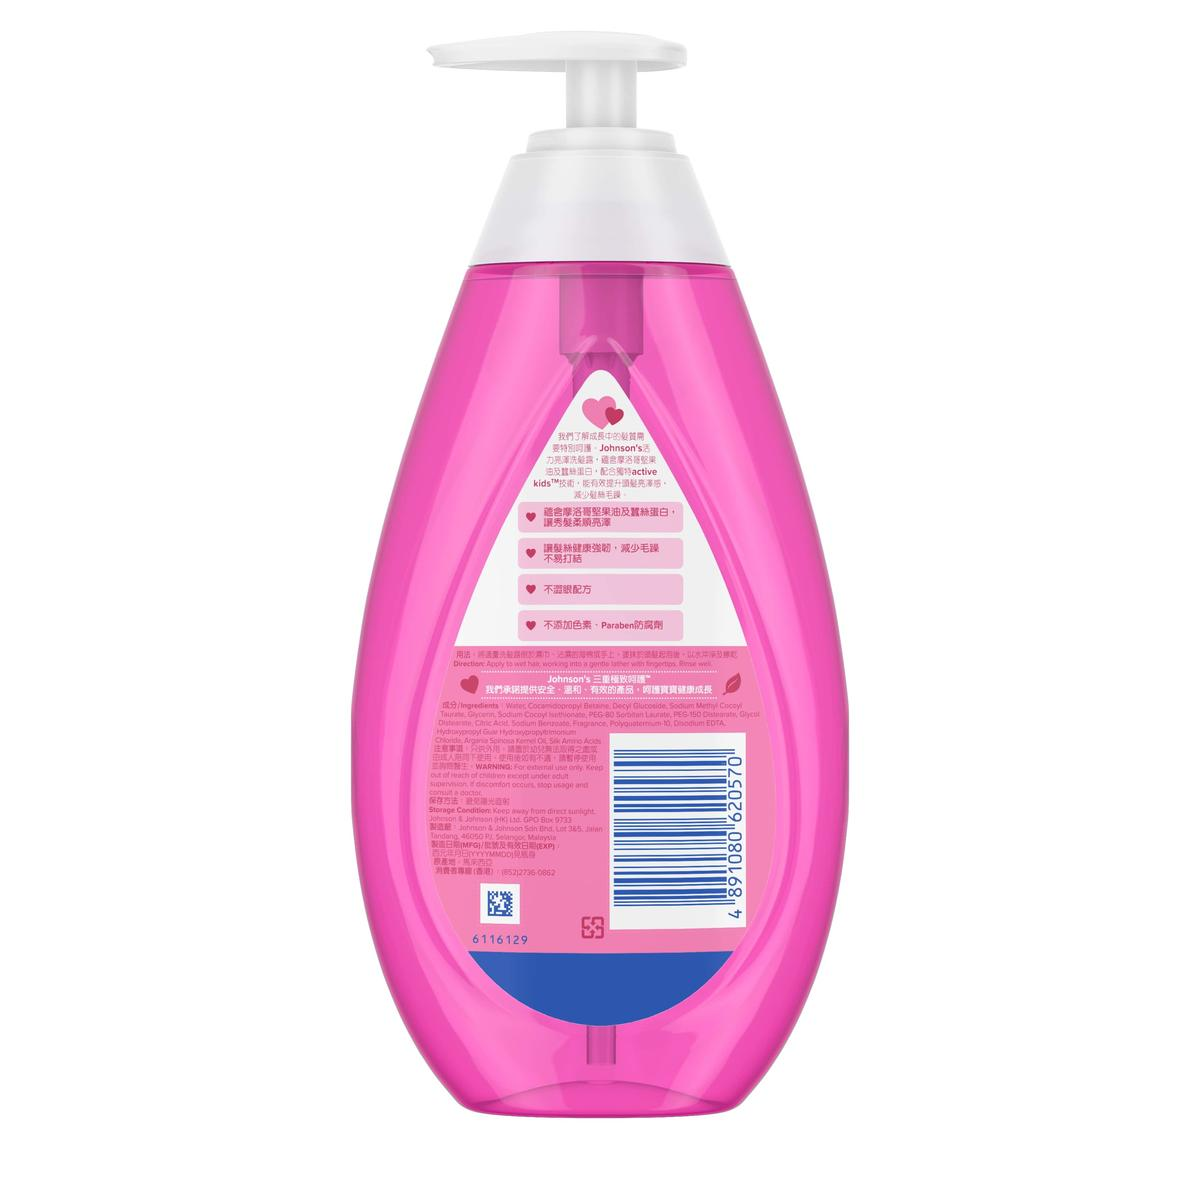 active-kids-shiny-drops-shampoo-500ml-back.jpg